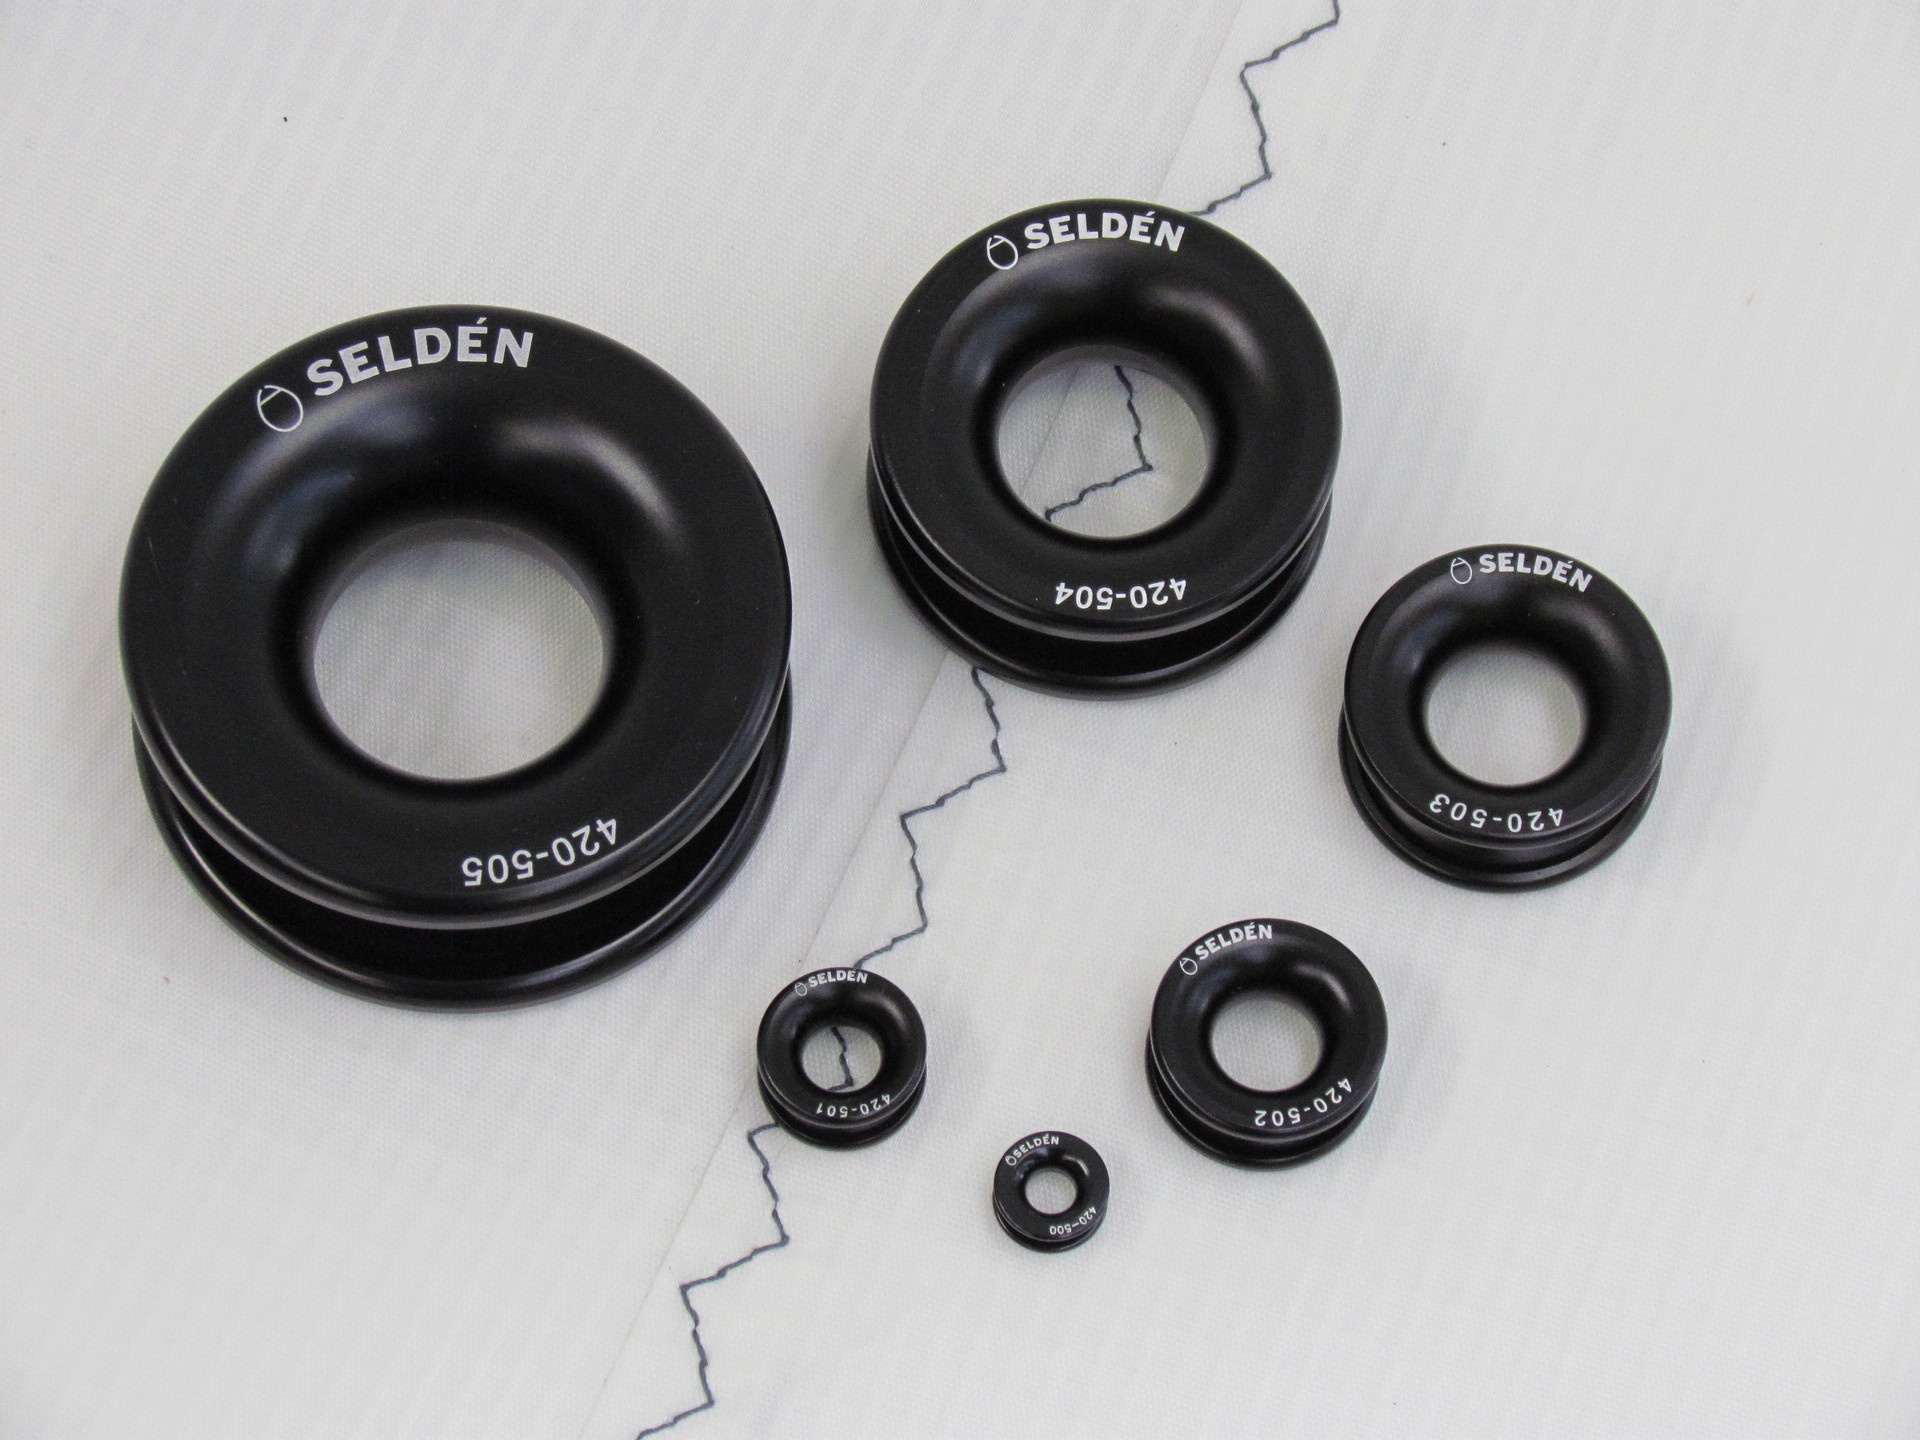 Selden Low Friction Ring 25/11